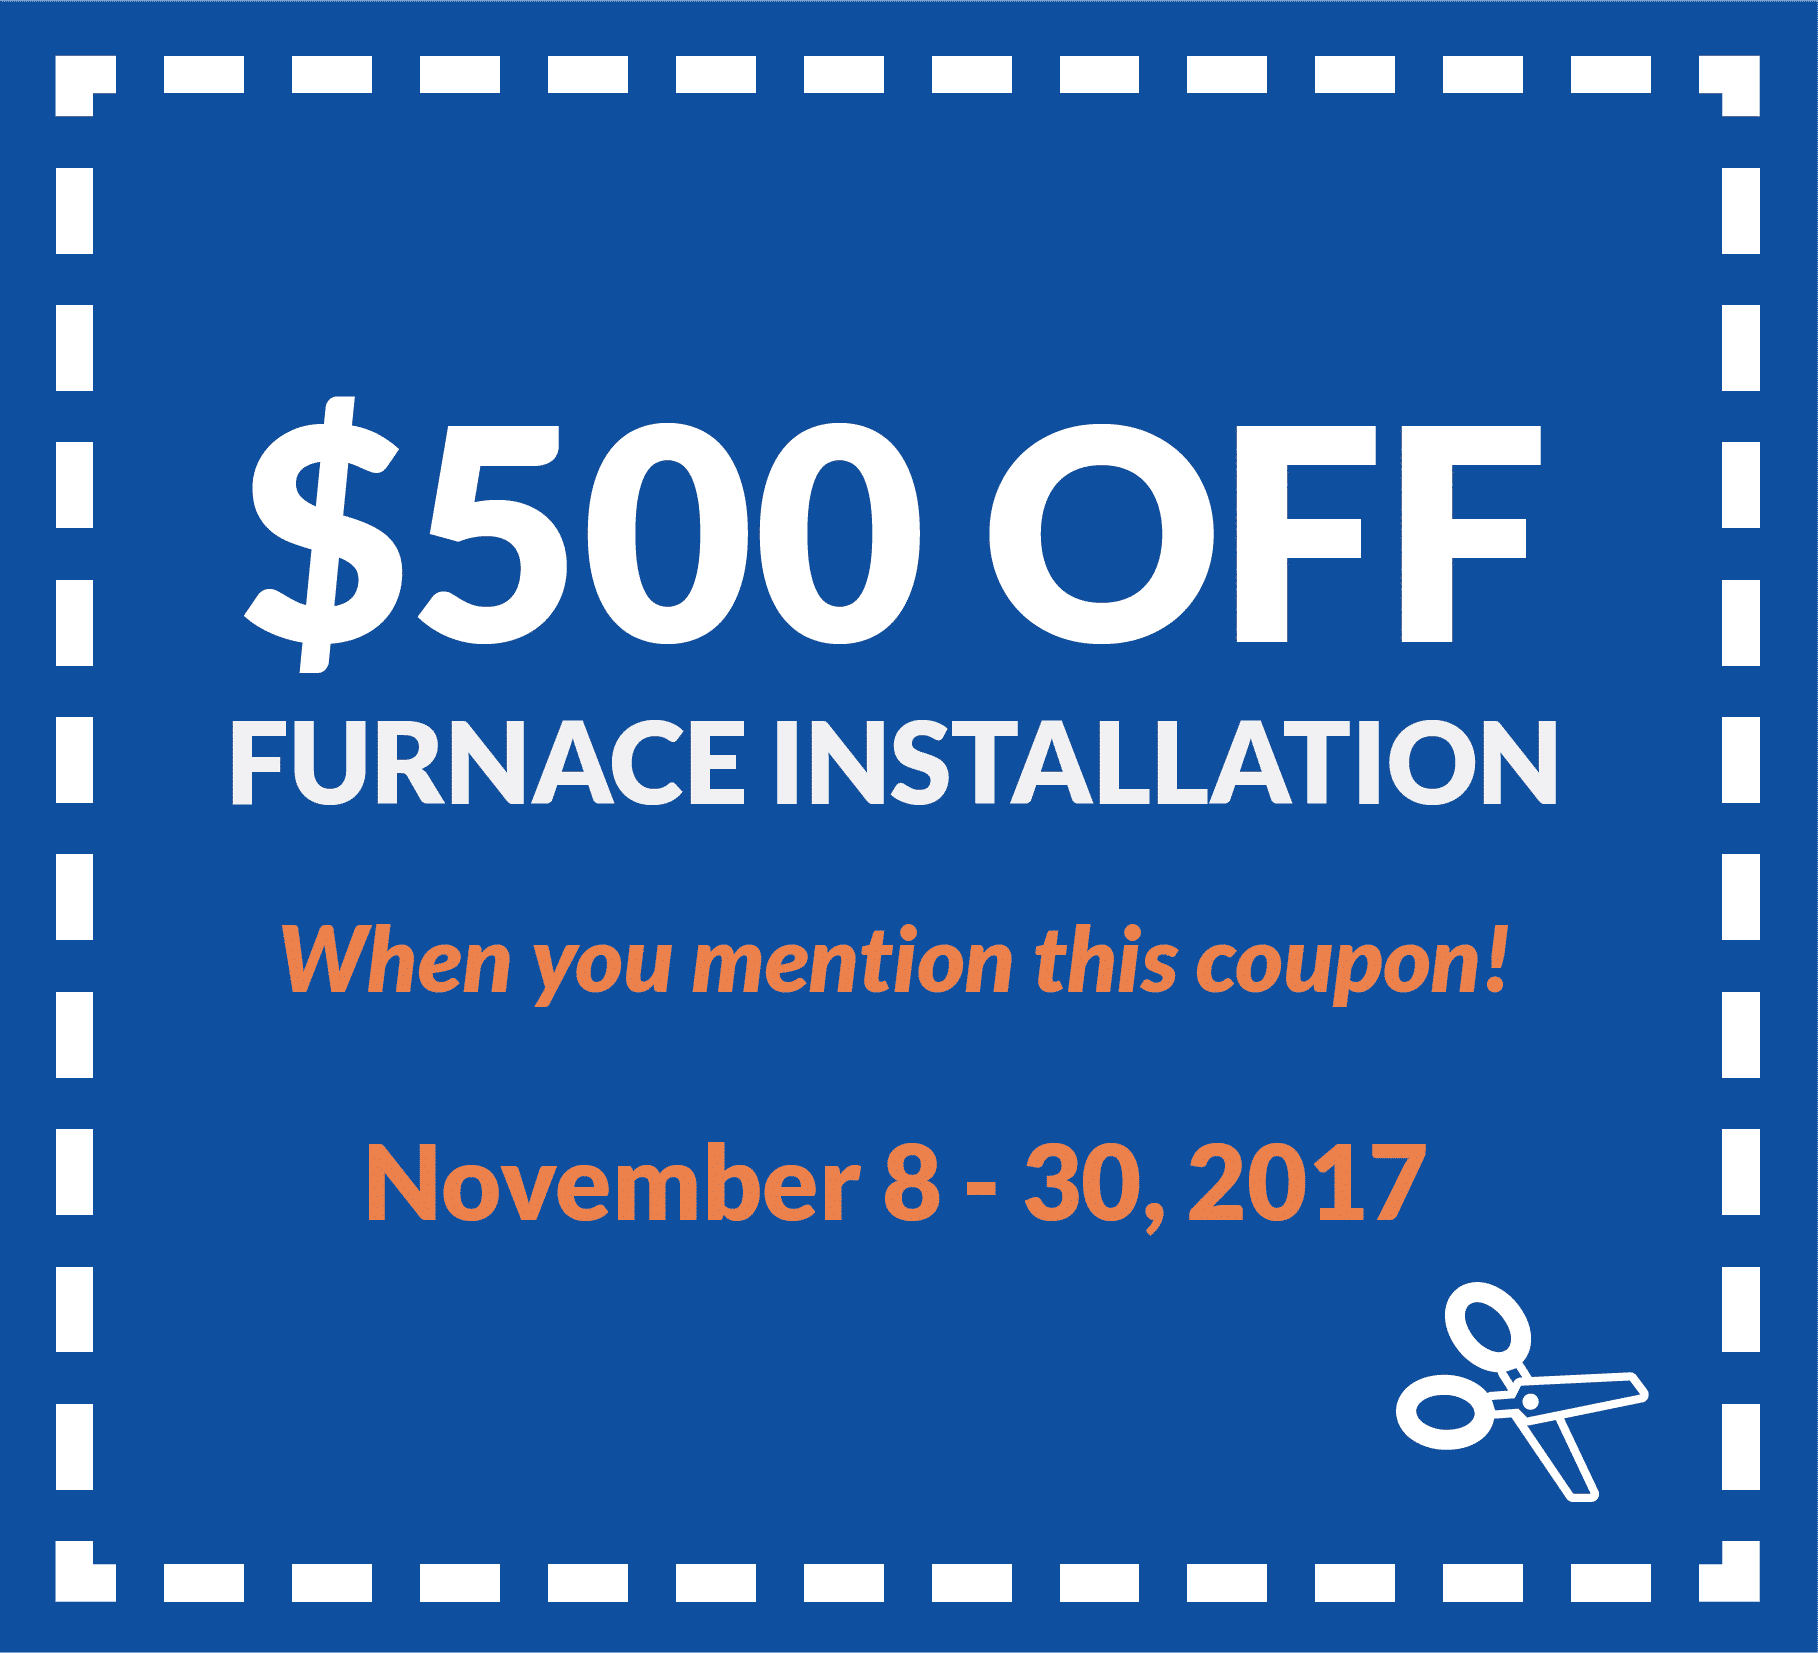 Coupon for $500 off furnace installation, when you mention this coupon. Valid from November 8 to 30, 2017.